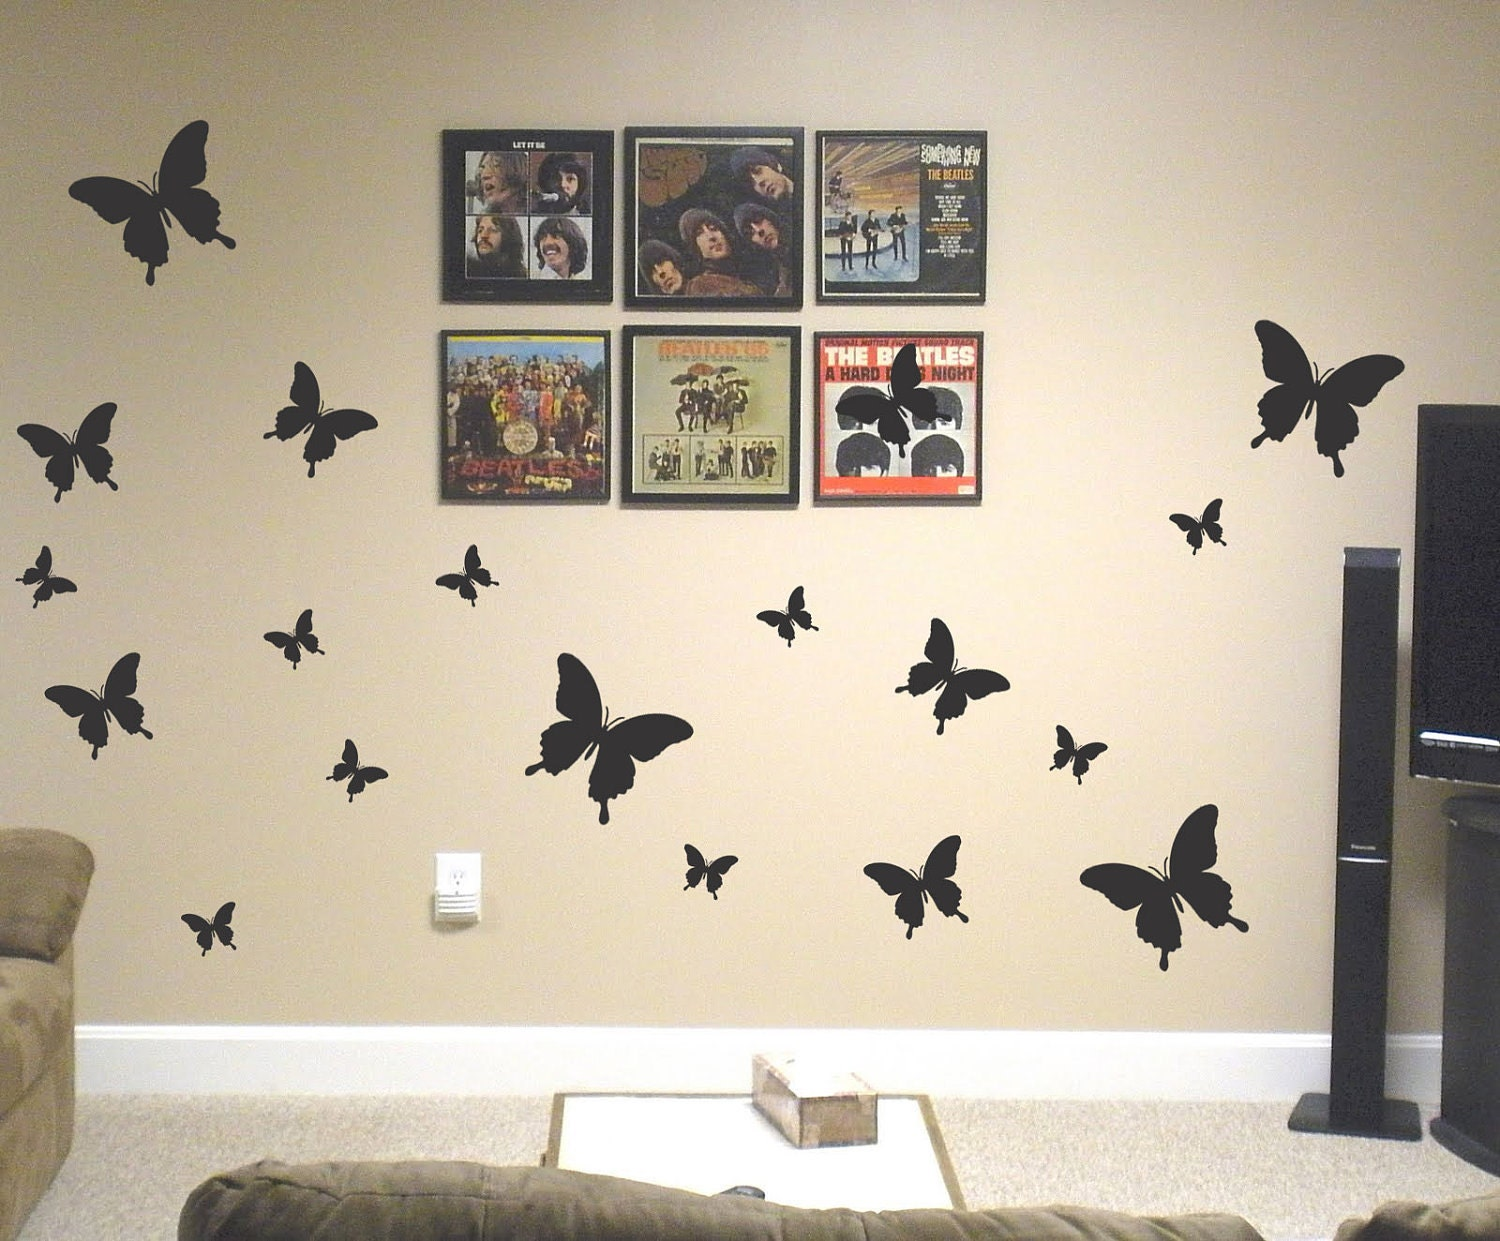 19 removable butterflies vinyl wall art decals bedroom Bedroom wall designs in pakistan